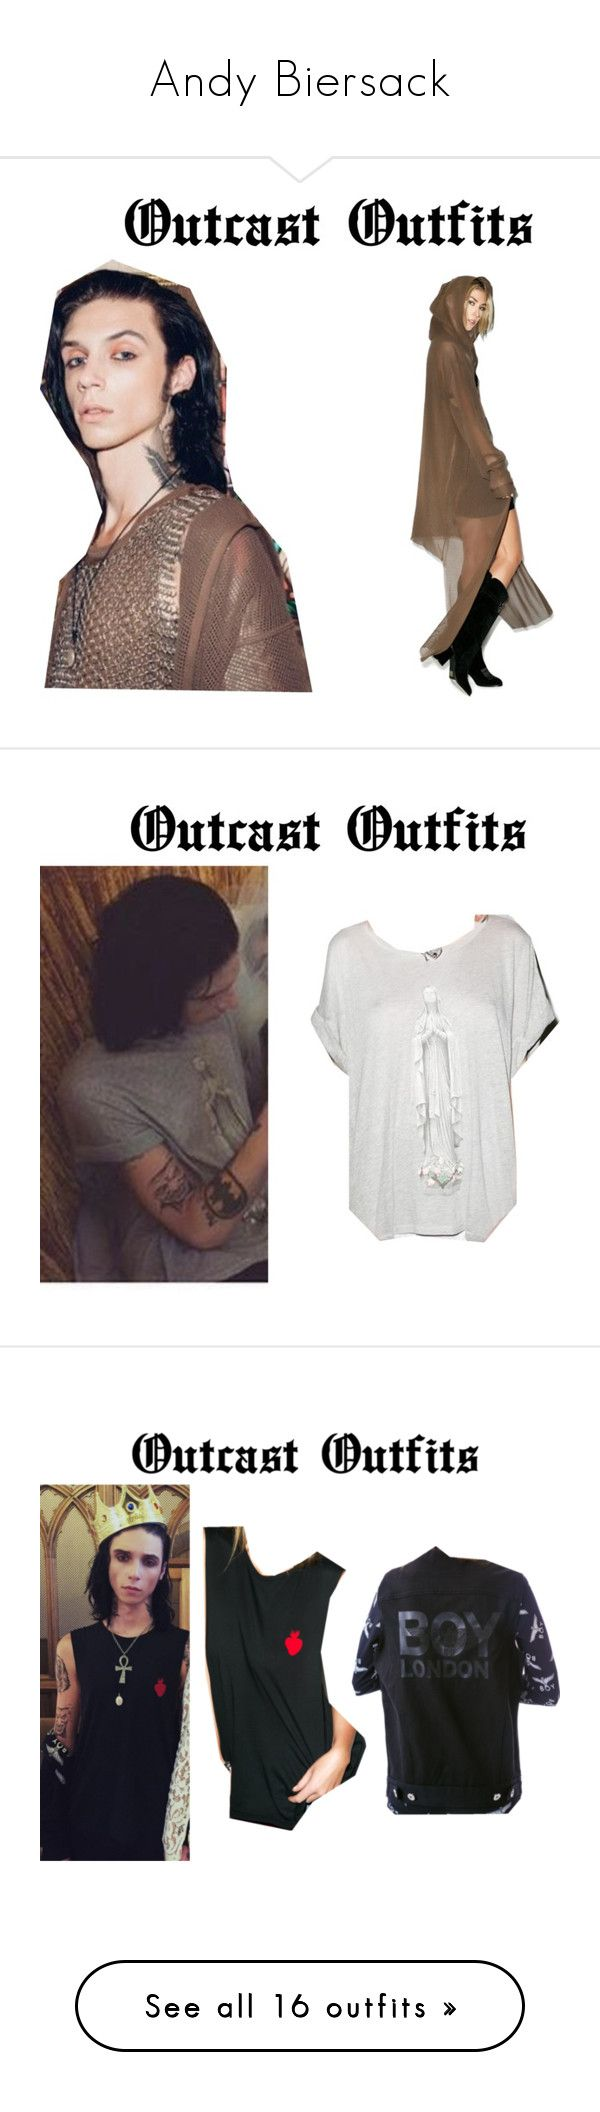 """""""Andy Biersack"""" by katiehorror ❤ liked on Polyvore featuring Lip Service, Wildfox, Beach Riot, BOY London, W.I.A, Killstar, Drifter, costumes, white costumes and white halloween costumes"""